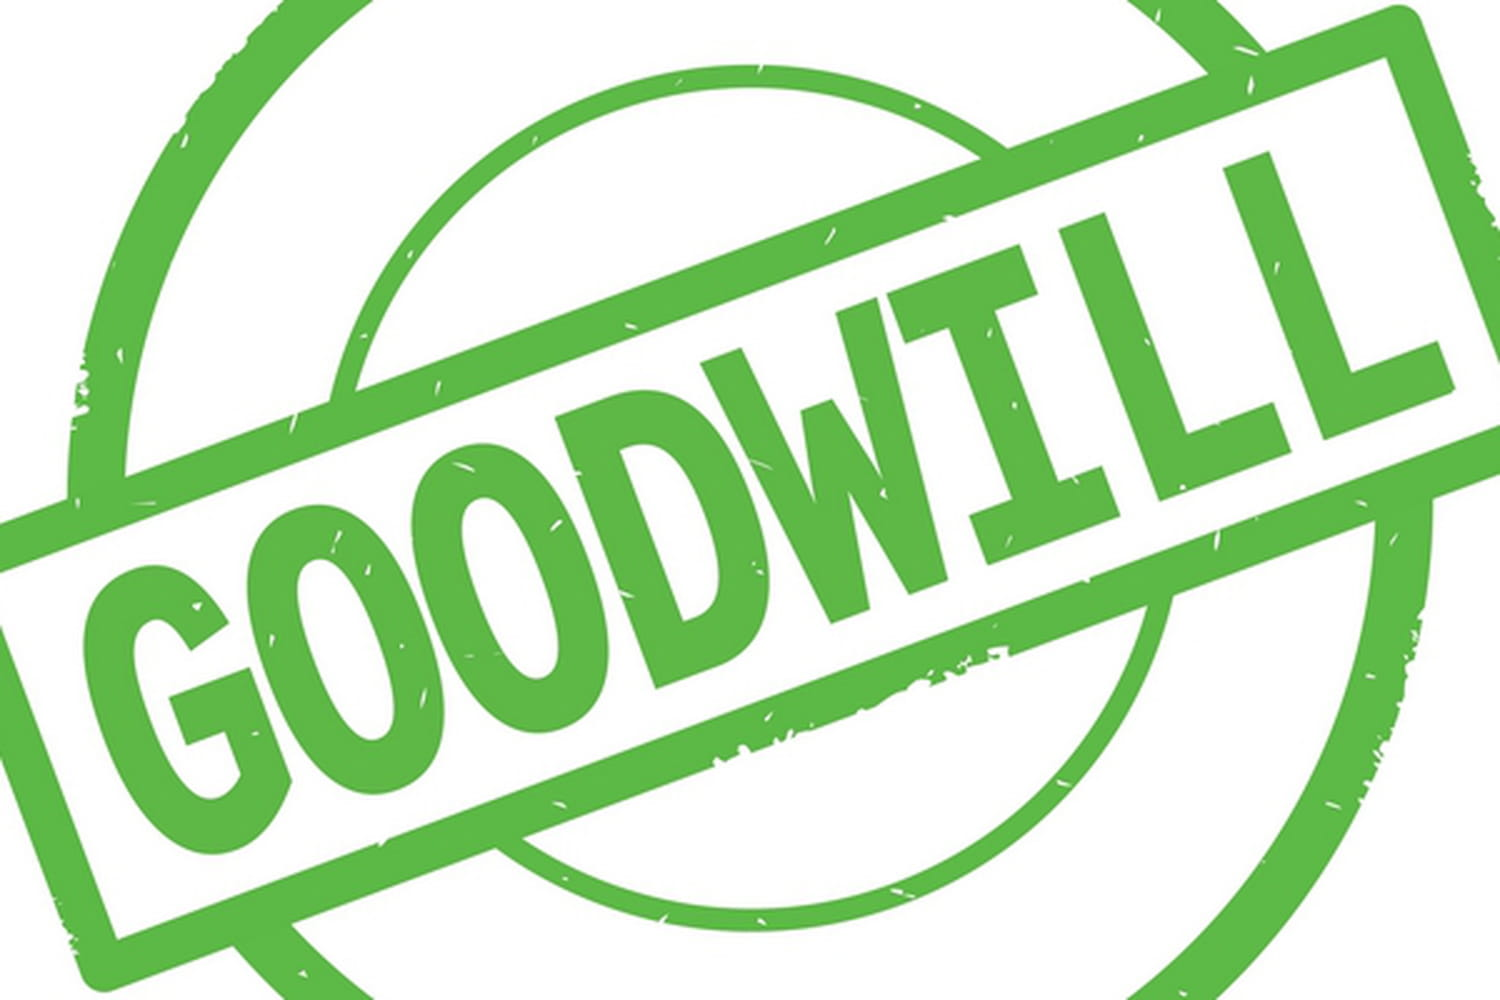 Goodwill: définition simple, calcul, traduction et synonymes